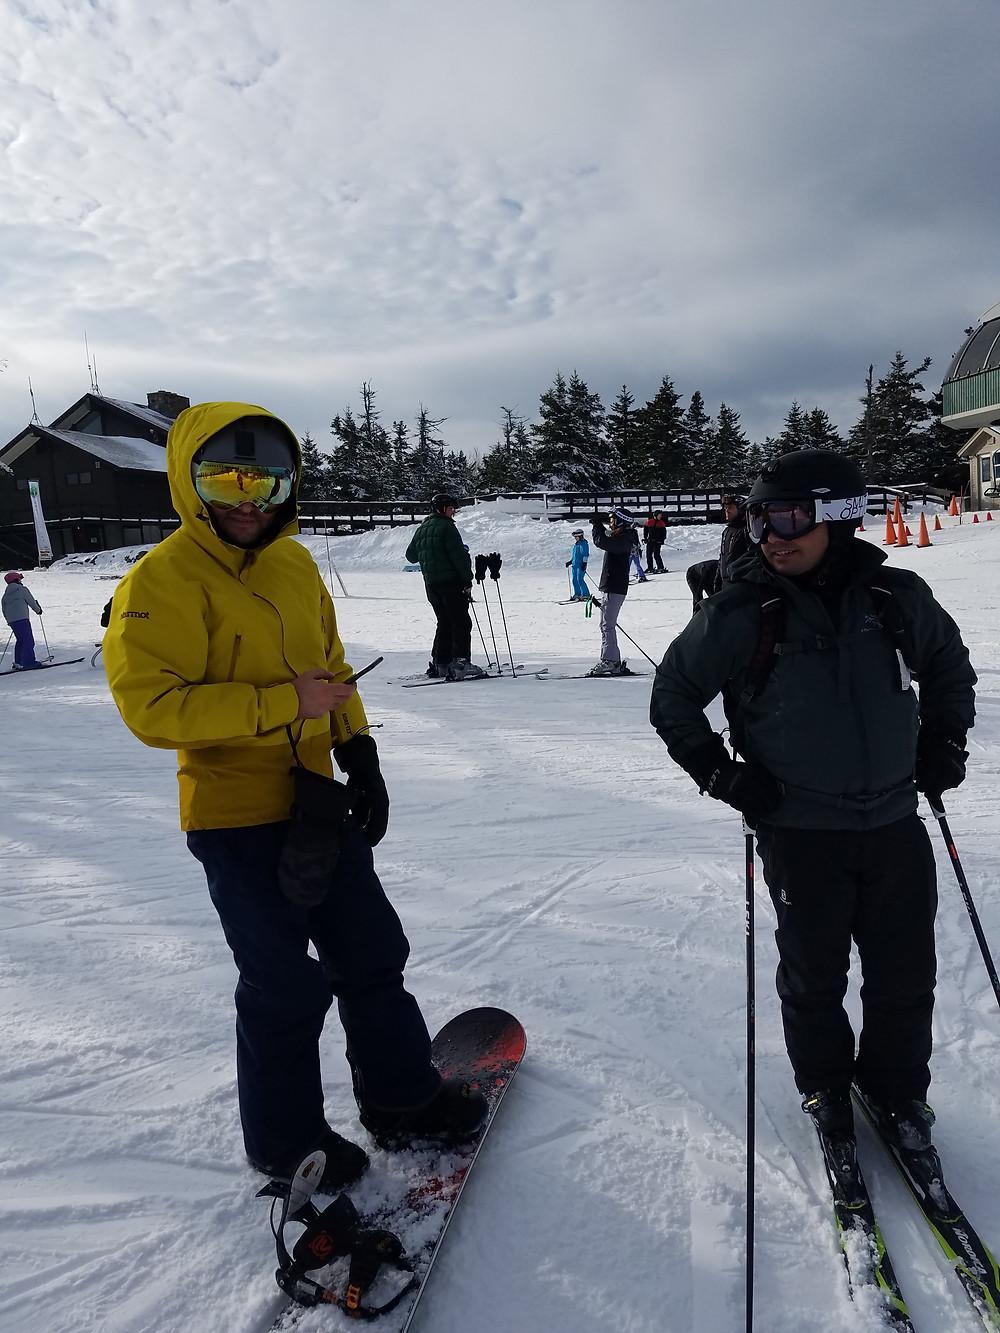 Skier and snowboarder at Sunapee